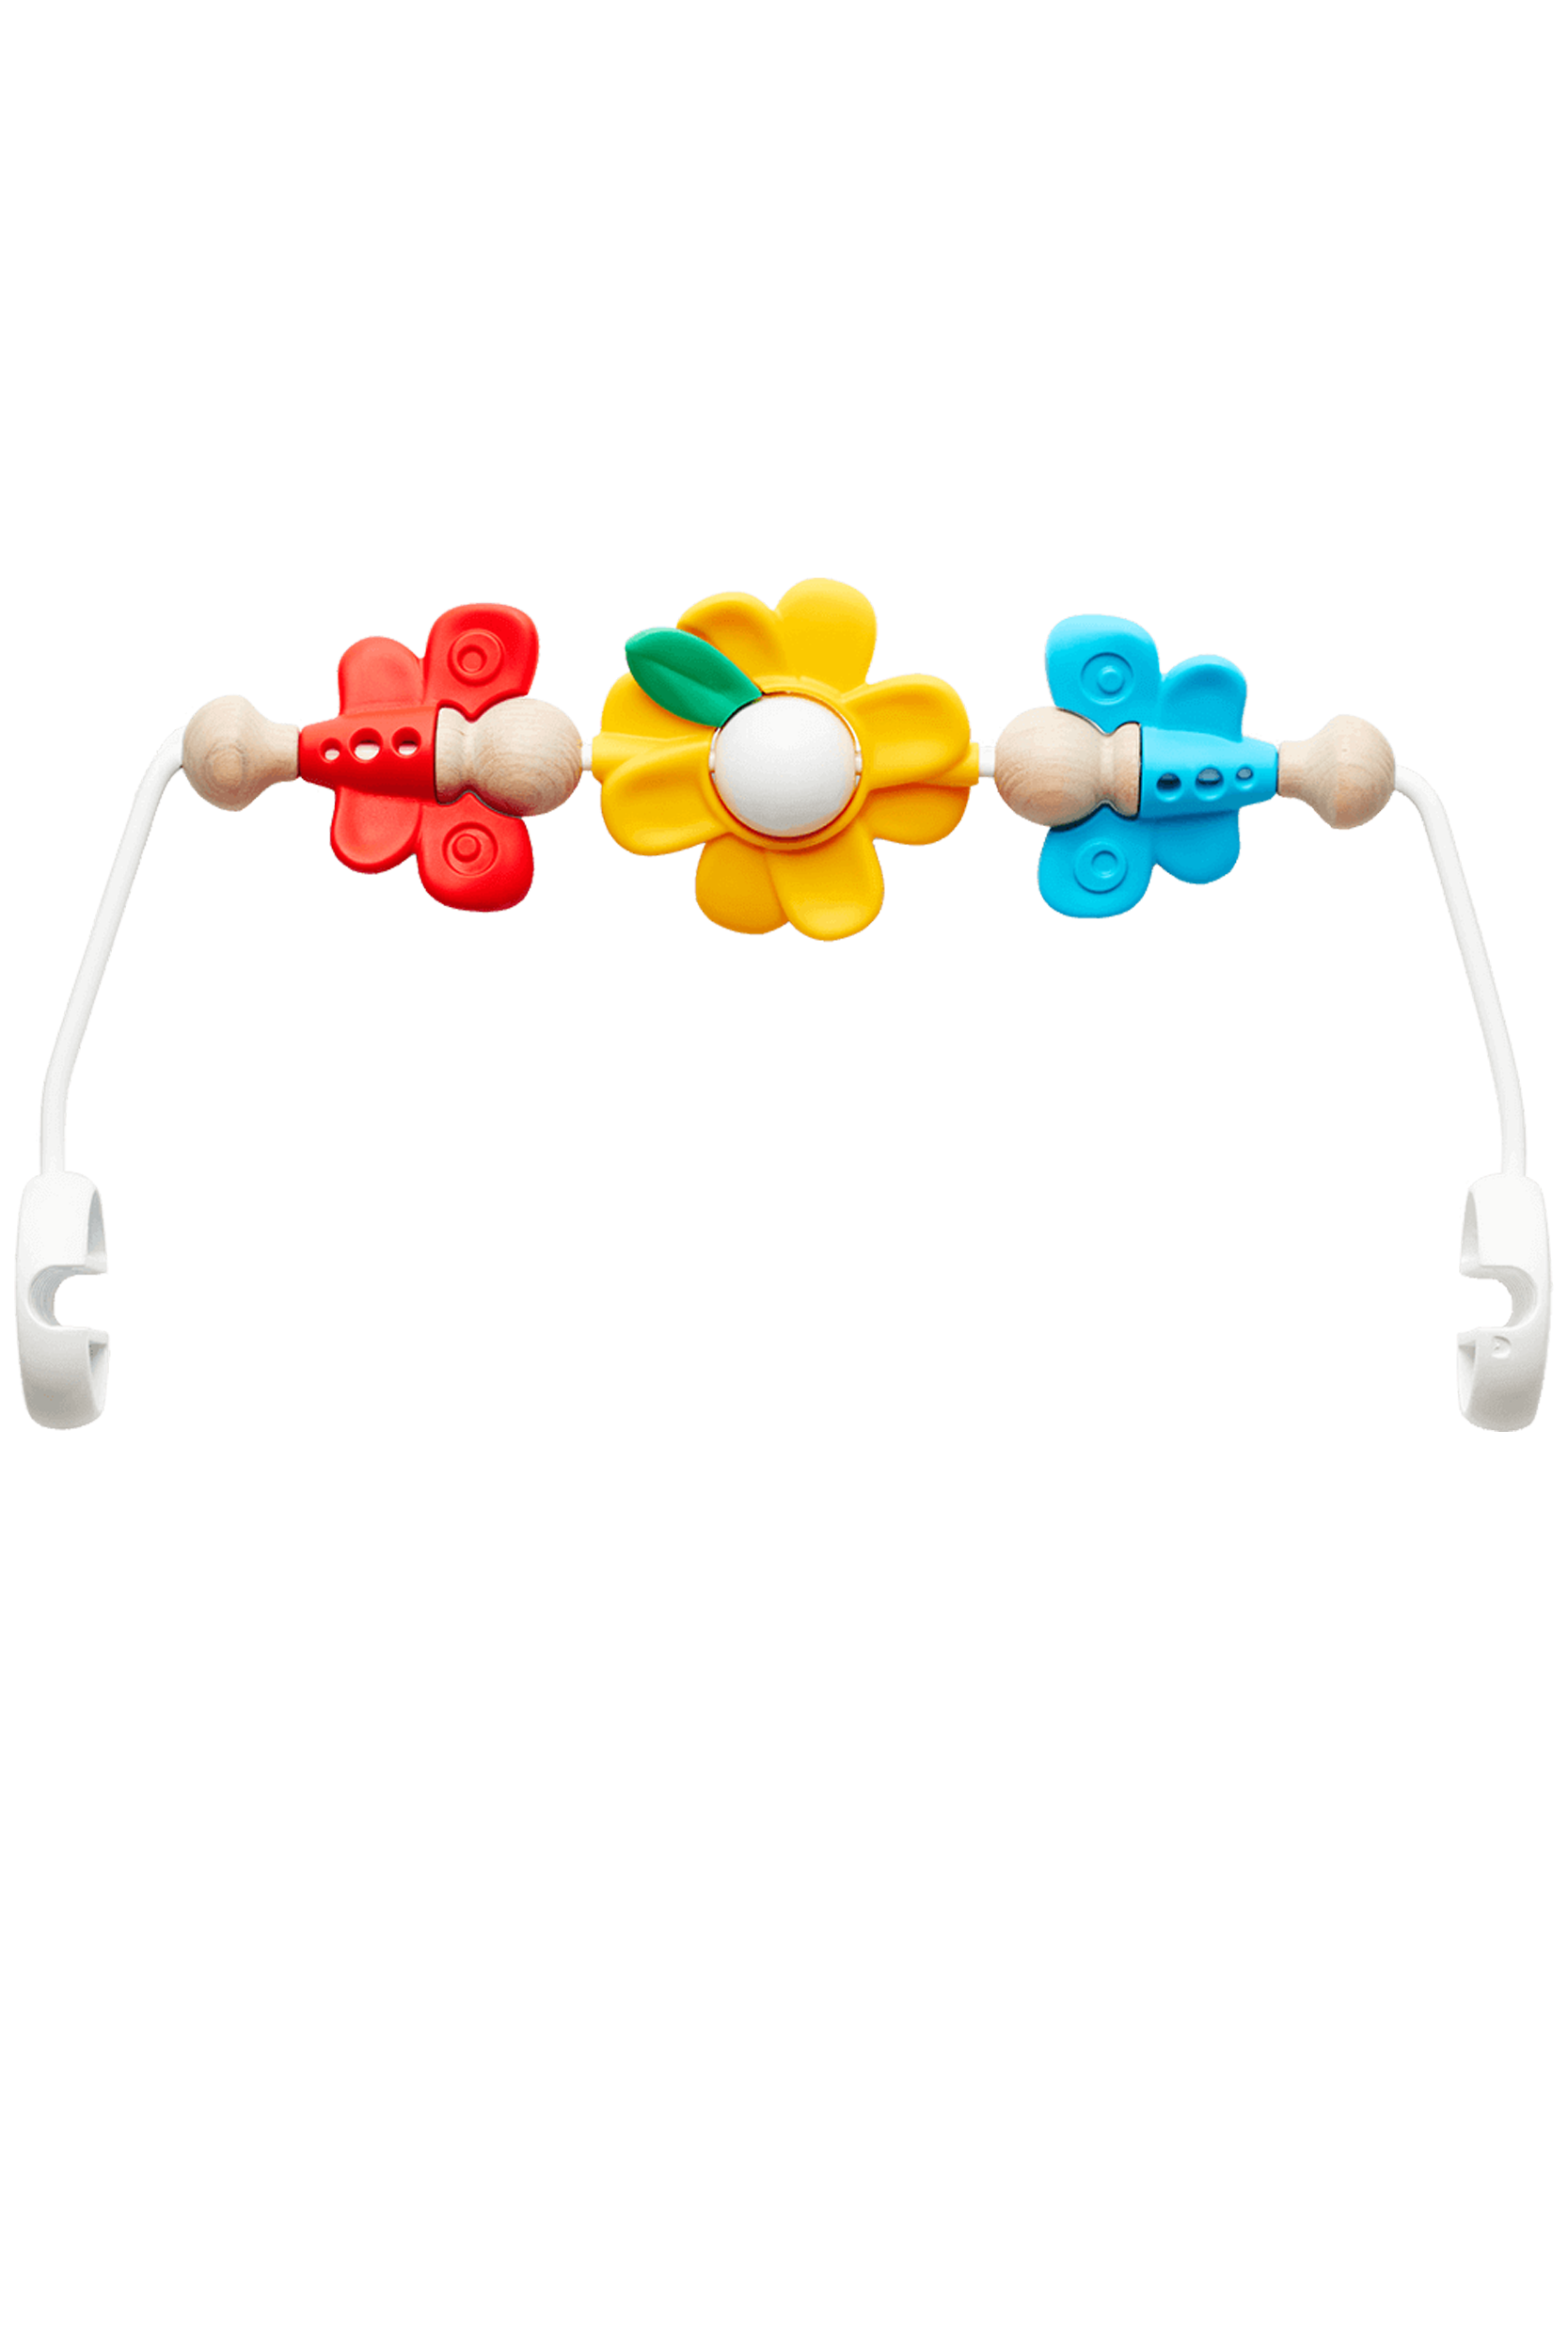 Brightly Coloured Toy For Baby Bouncer Babybj 214 Rn